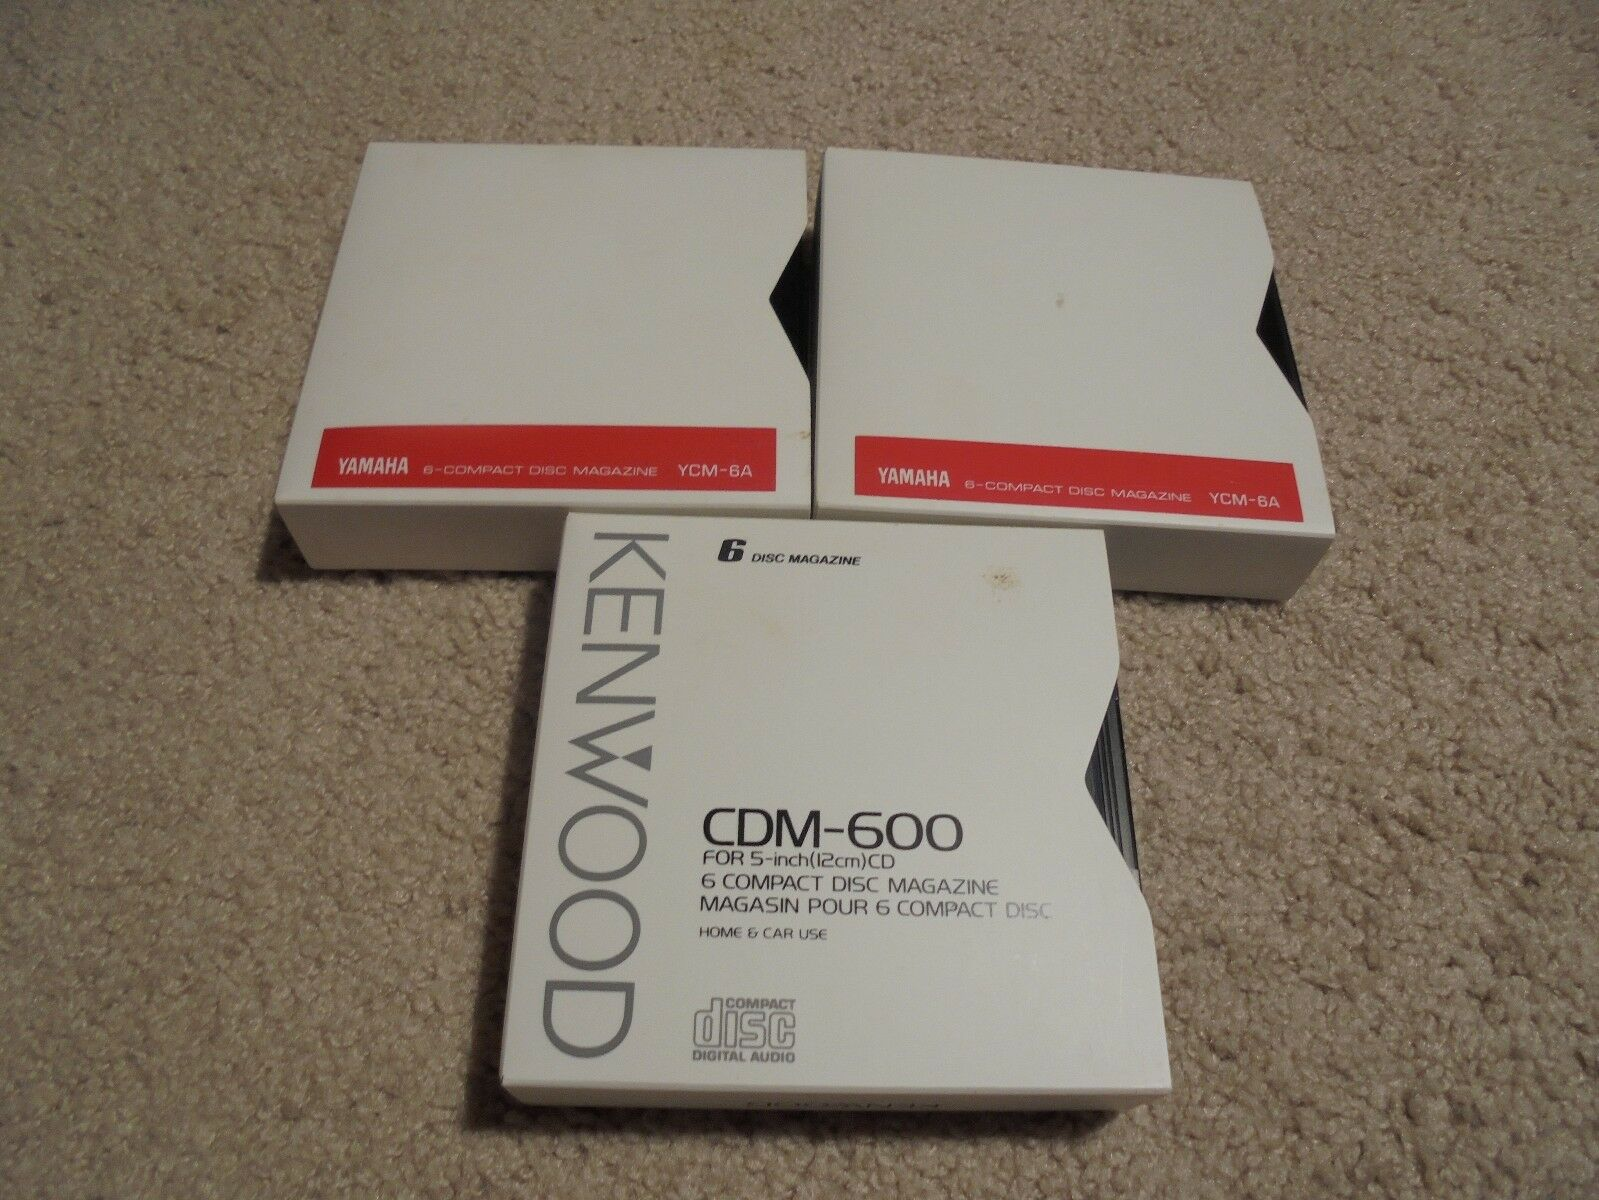 LOT OF 3 (6-Compact Disc Magazine): 1 Kenwood CDM-600 , 2 YAMAHA YCM-6A